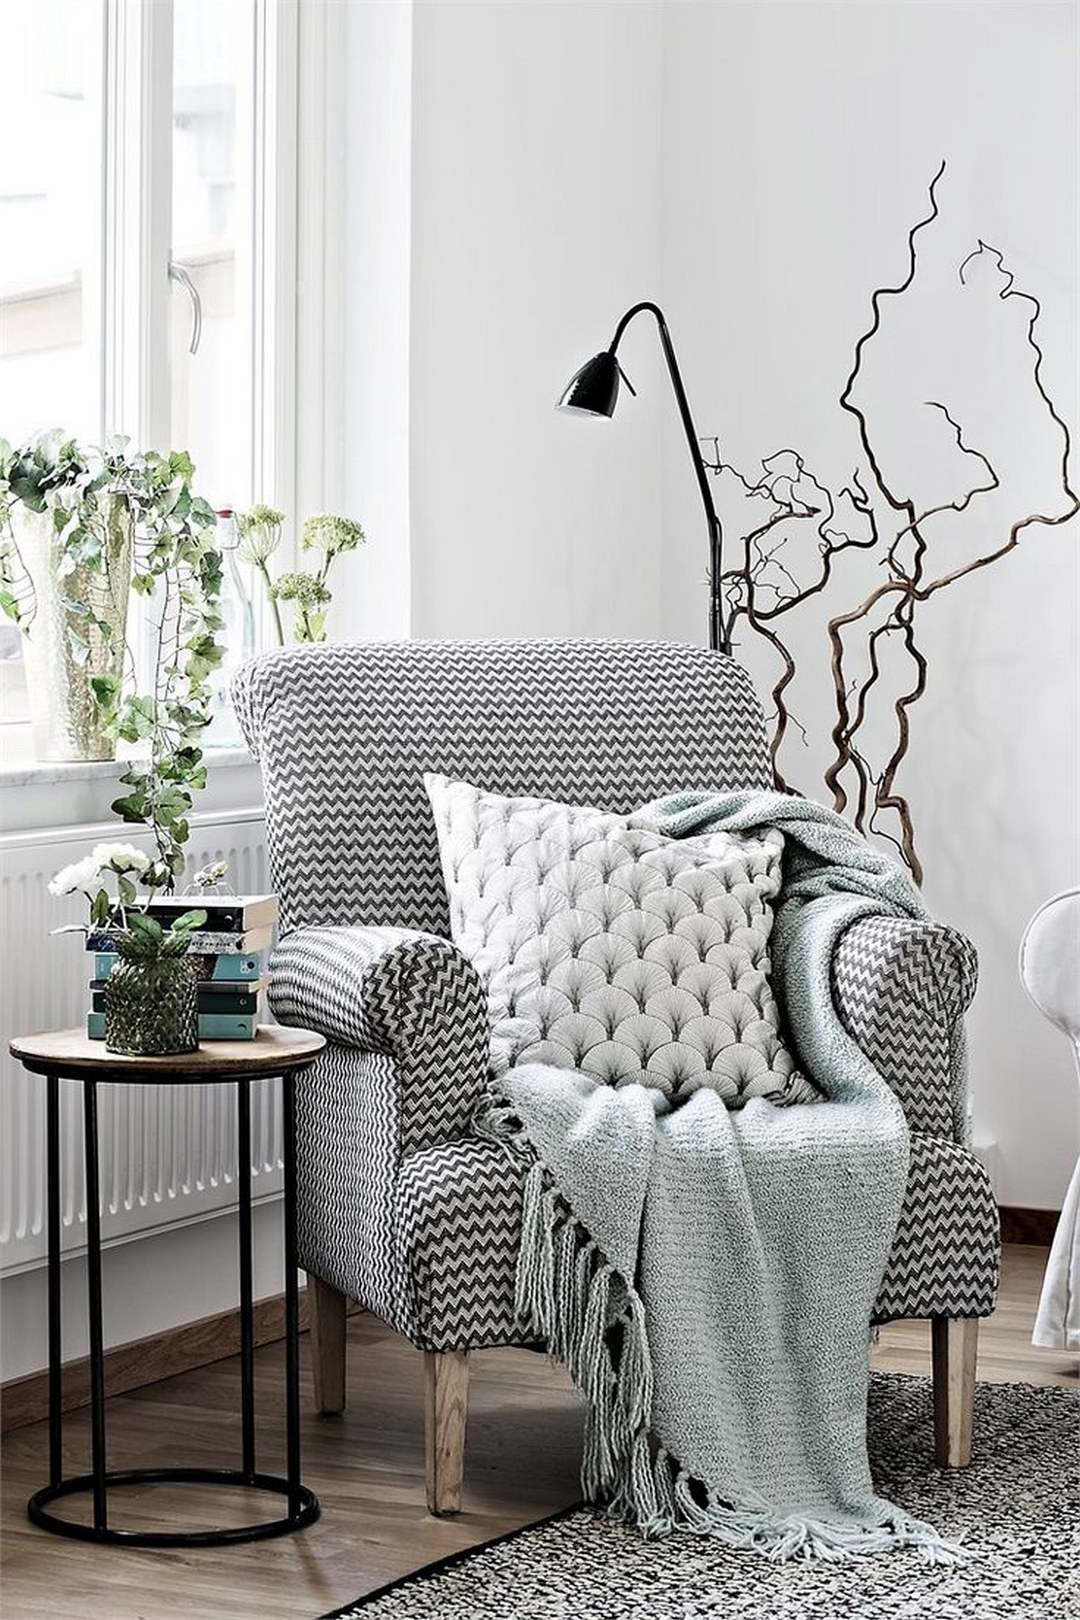 What's Hot On Pinterest: Cozy Ideas For Your Reading Corner! what's hot on pinterest What's Hot On Pinterest: Cozy Ideas For Your Reading Corner! Whats hot on pinterest 5